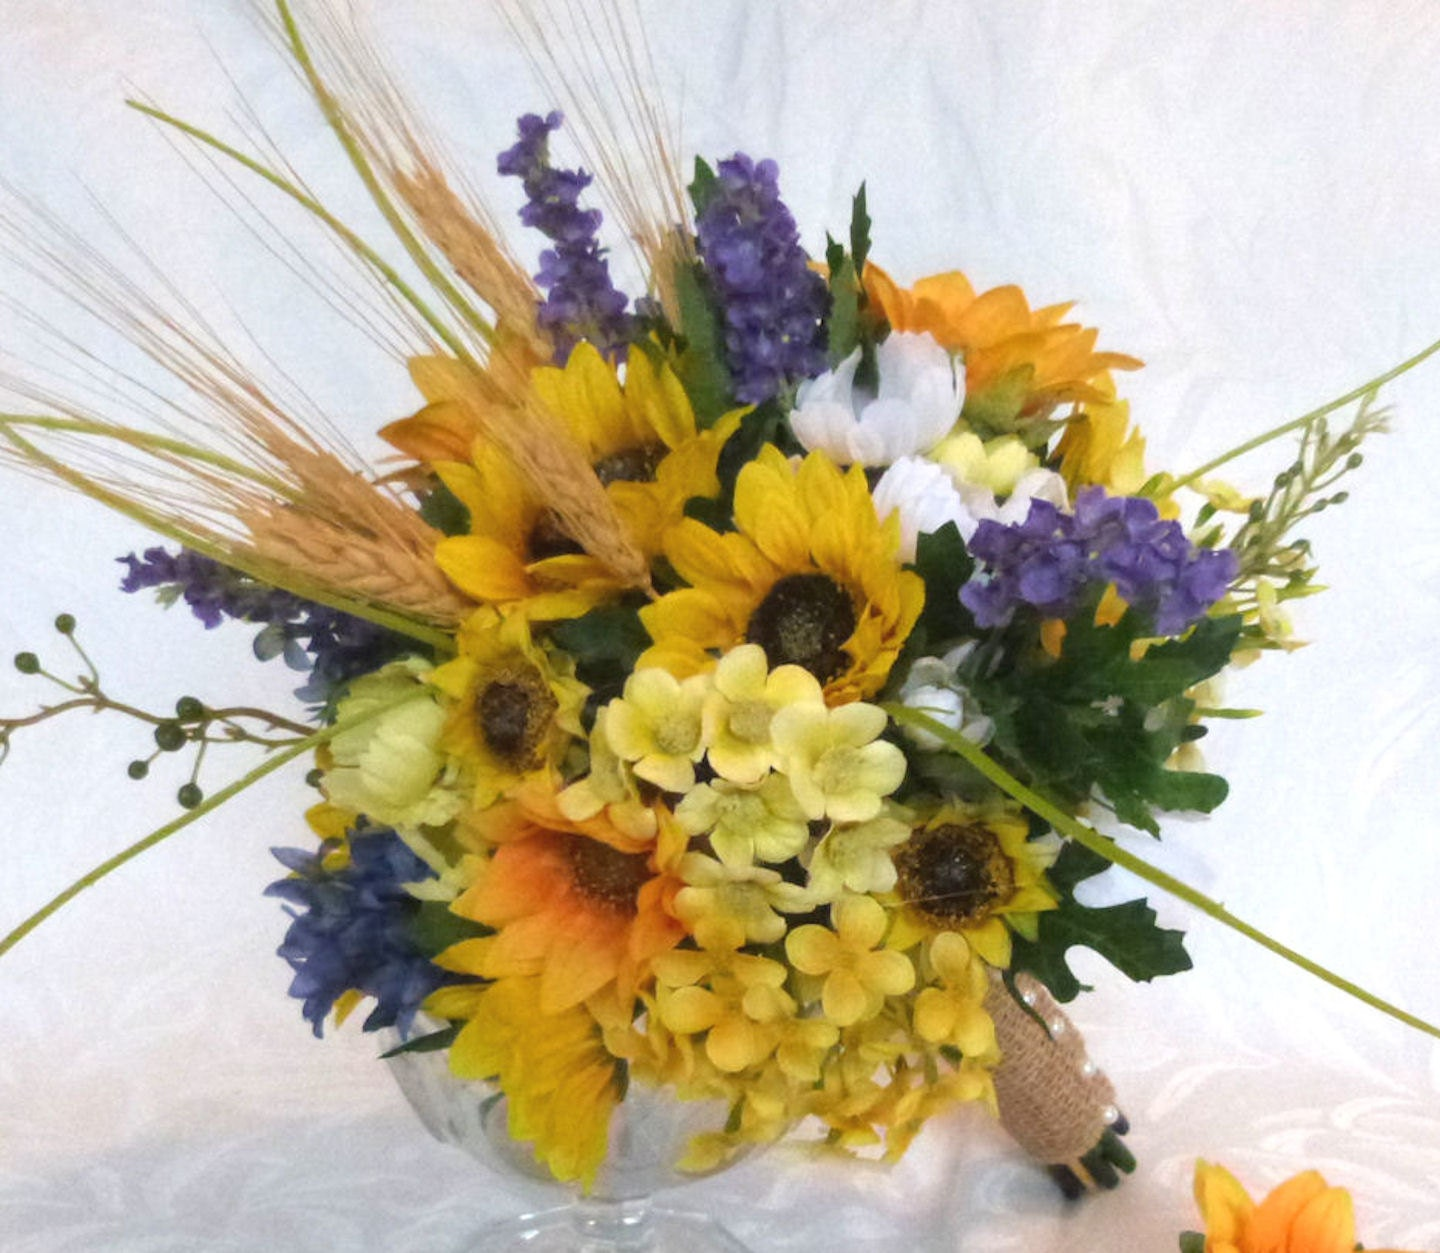 Rustic wedding bouquet made with sunflower and wheat